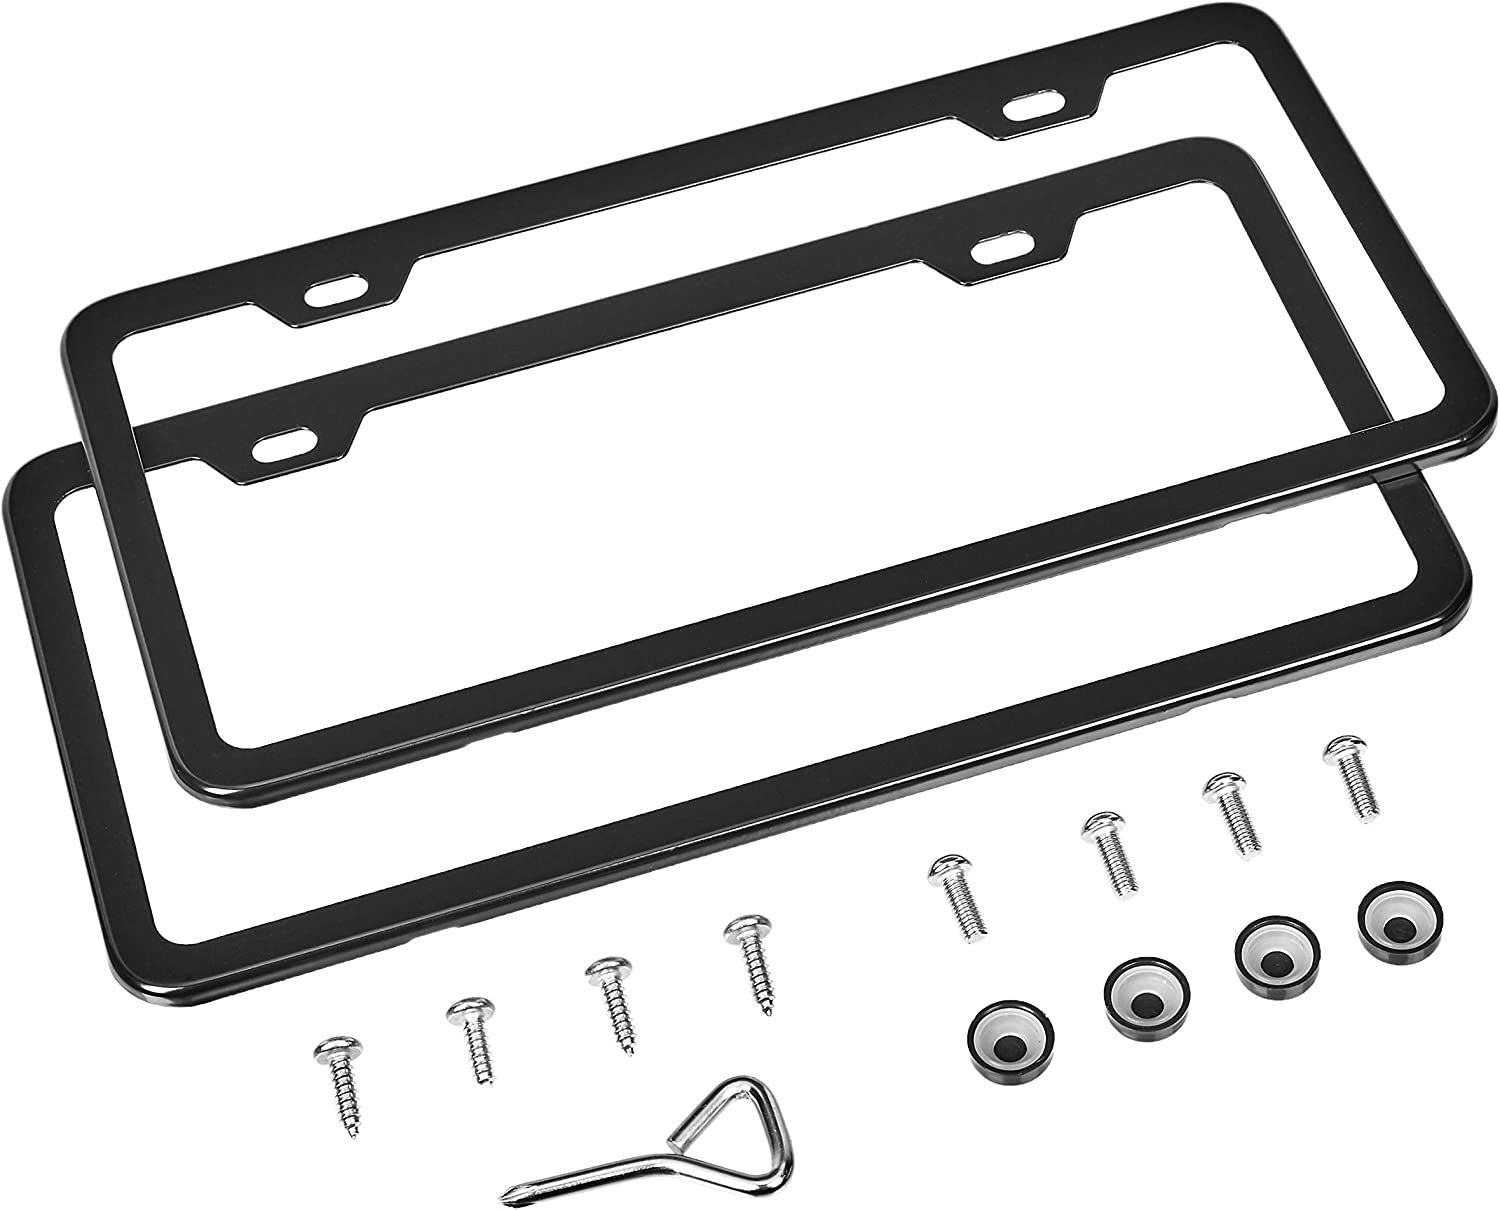 AmazonBasics Matte Aluminum License Plate Frame Pair with Screw Caps - 2-Hole, 12.2'' x 6.3'', Black